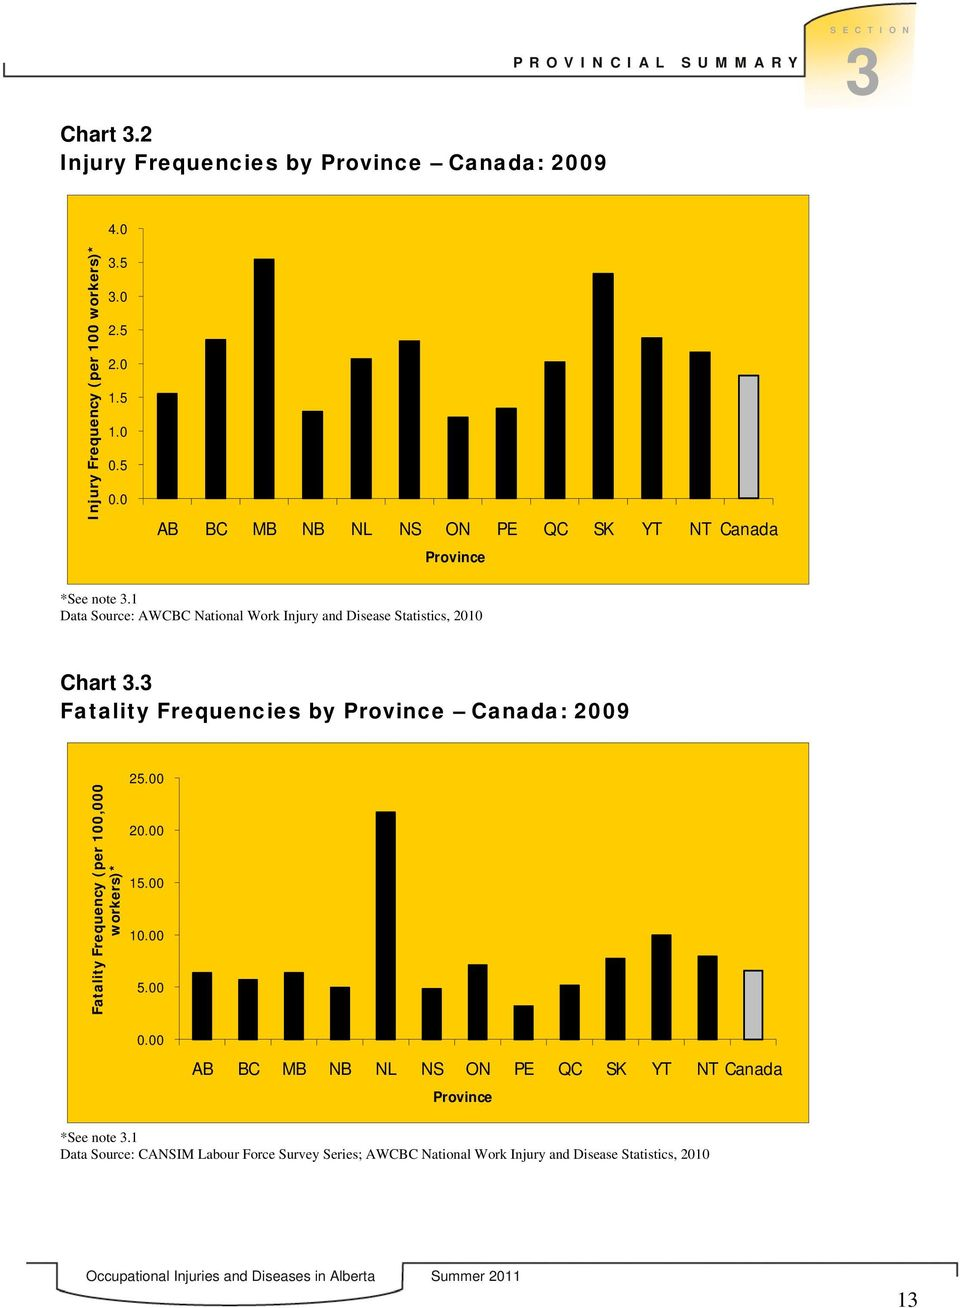 3 Fatality Frequencies by Province Canada: 2009 Fatality Frequency (per 100,000 workers)* 25.00 20.00 15.00 10.00 5.00 0.